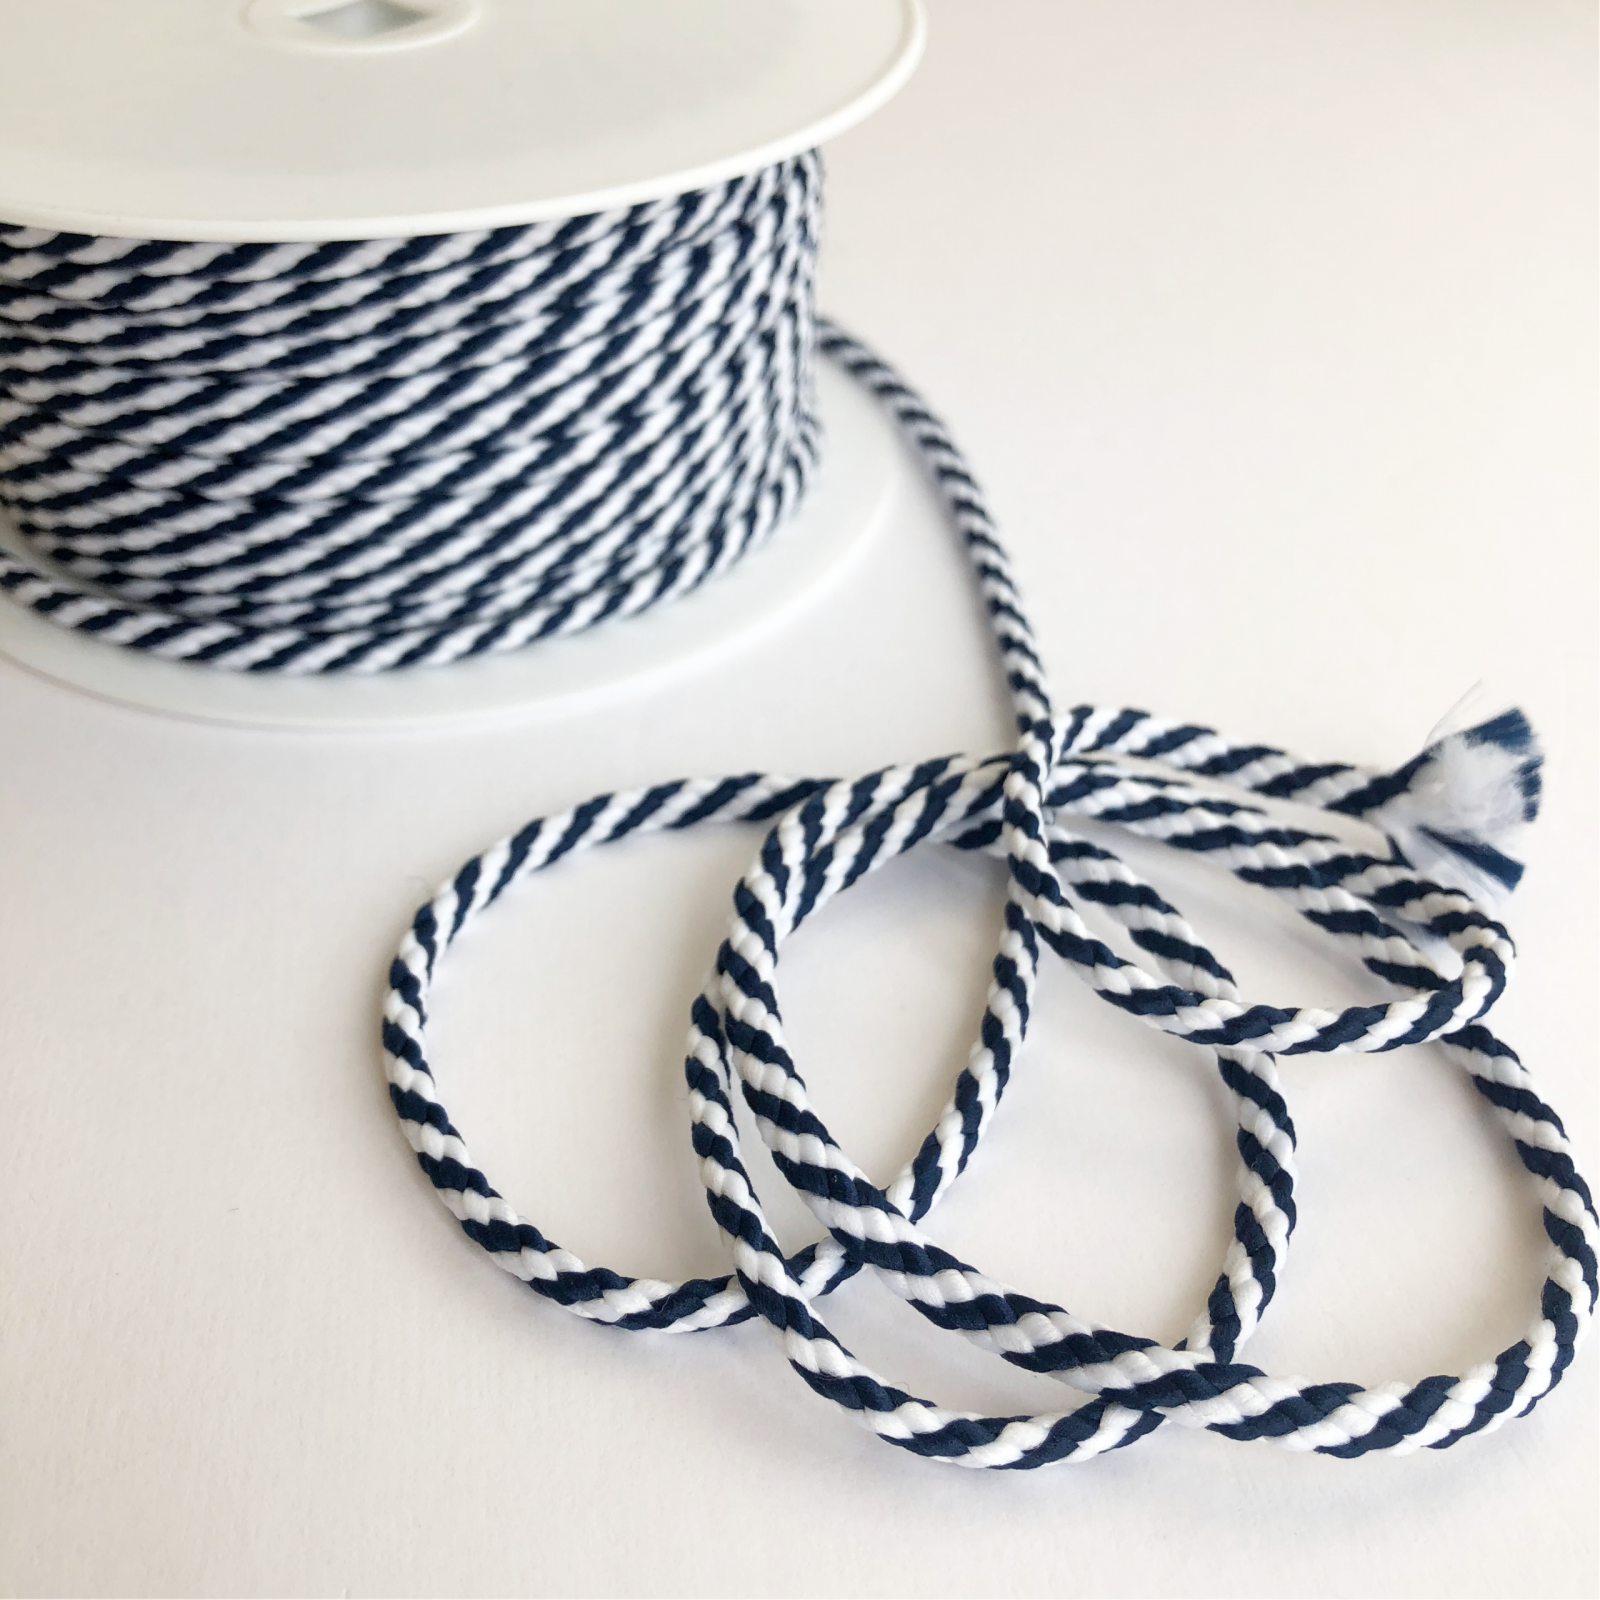 Drawstring Cord - Navy Blue and White Striped